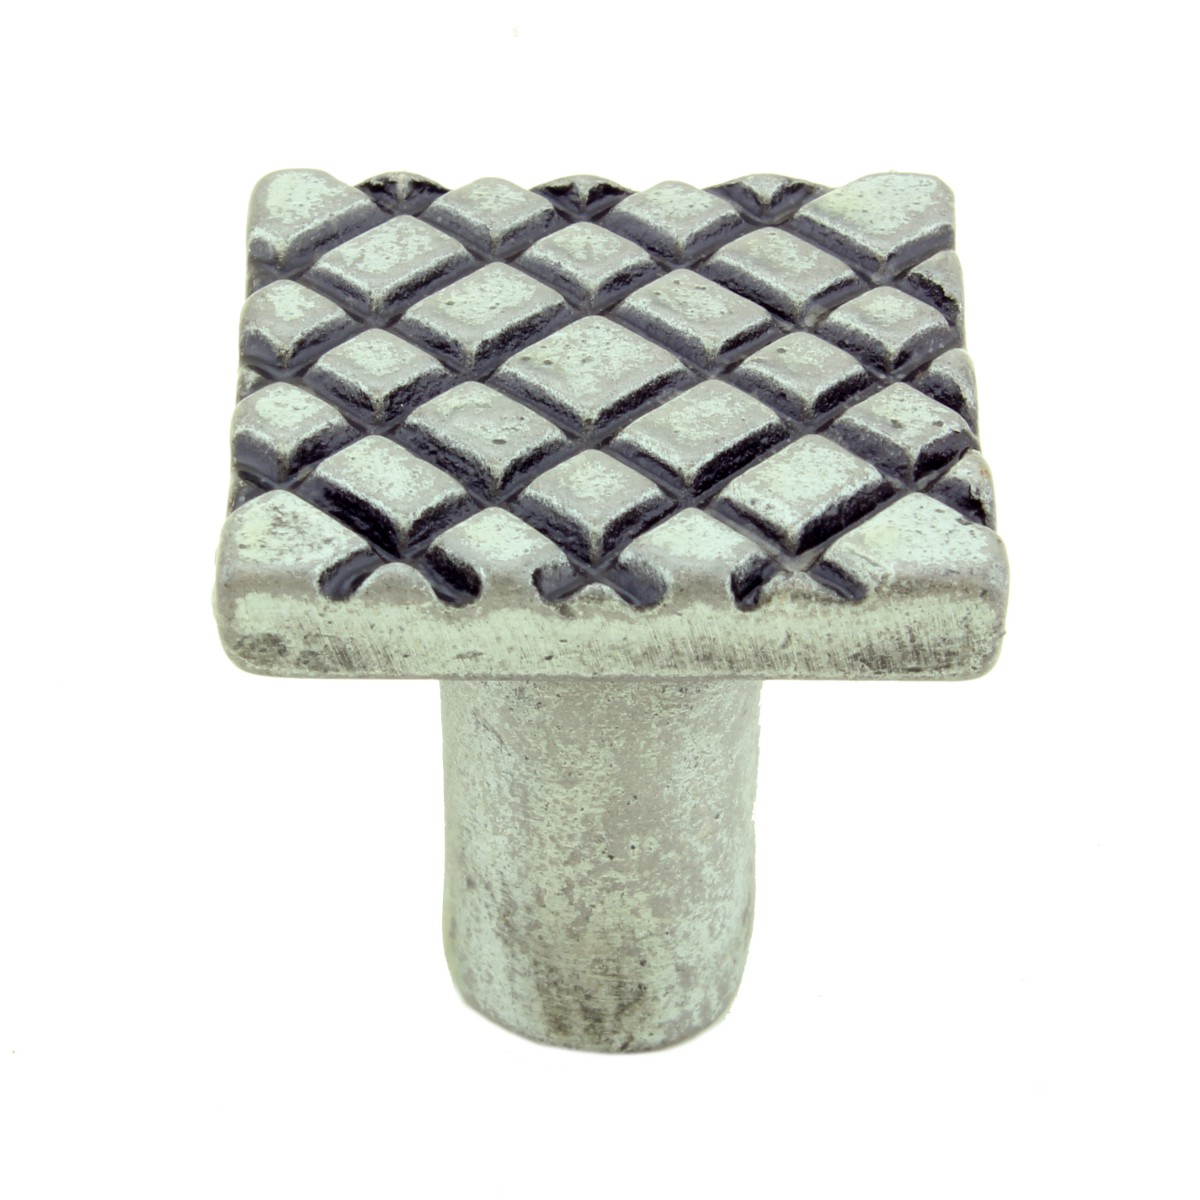 Iron Cabinet Knob Pewter Finish Square Diamond Cabinet Hardware Pack of 10 Cabinet Knob Cabinet Hardware Iron Cabinet Knob